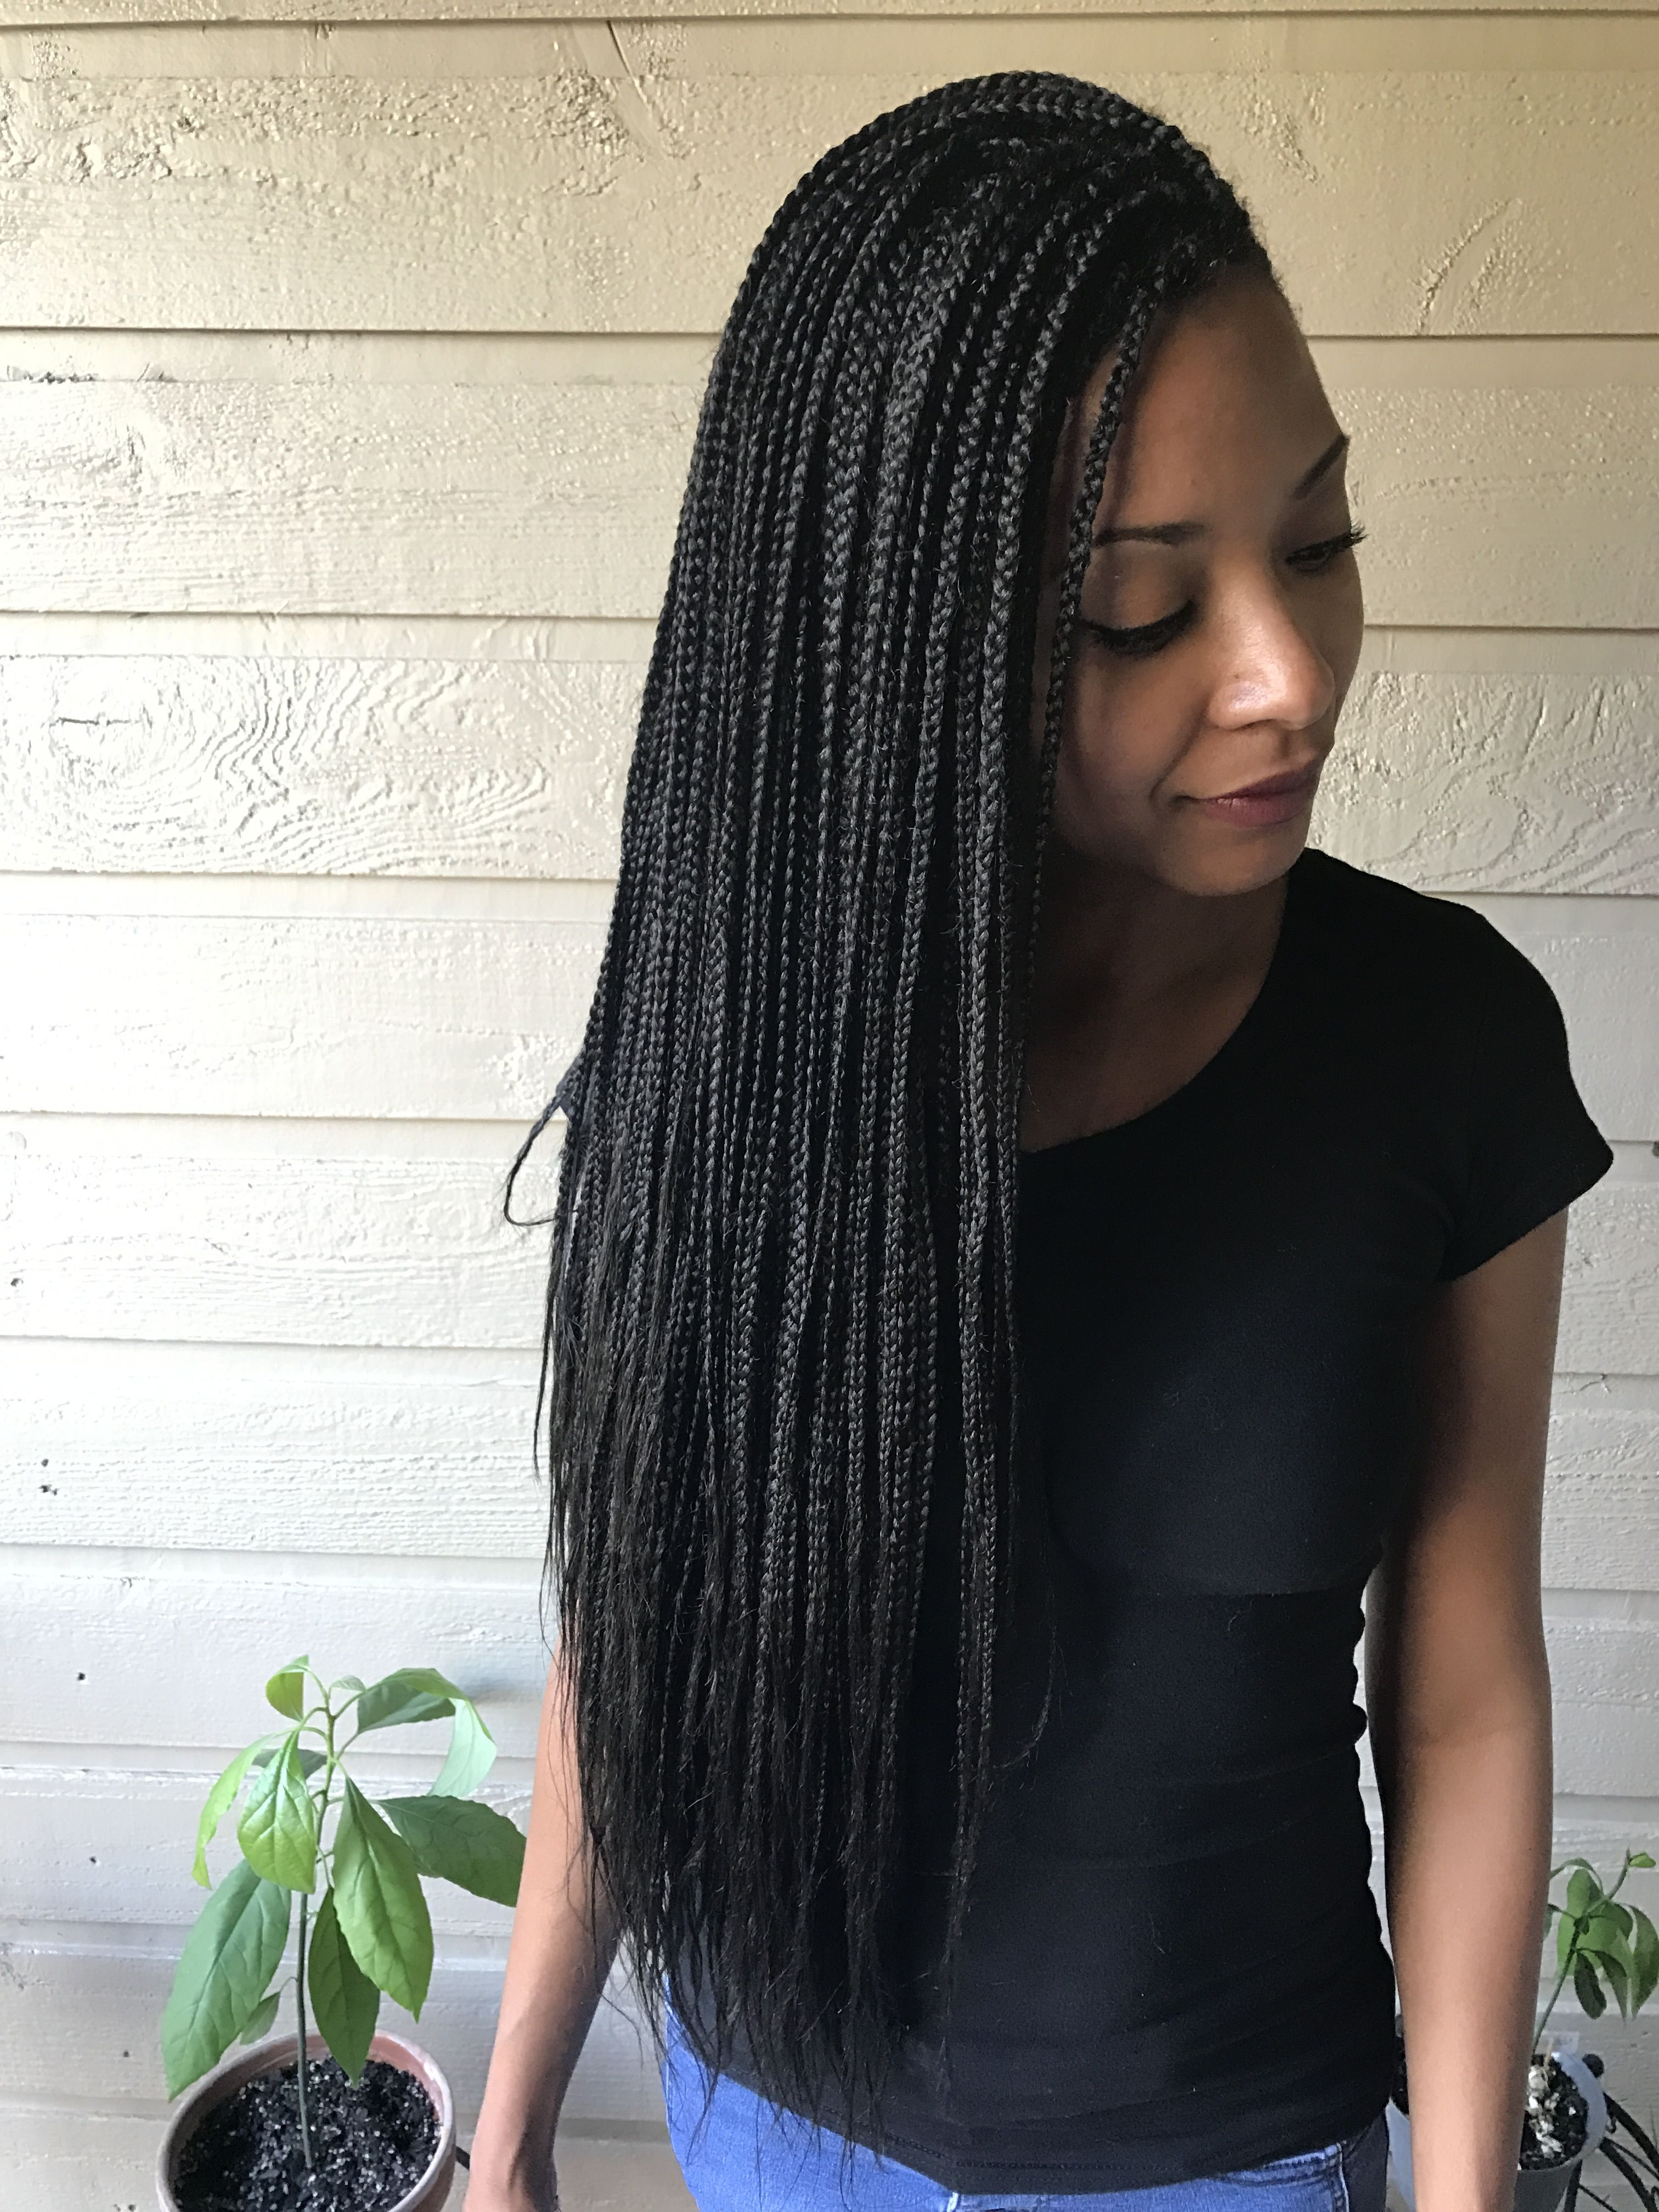 Small Waist Length Box Braids Follow On Ig